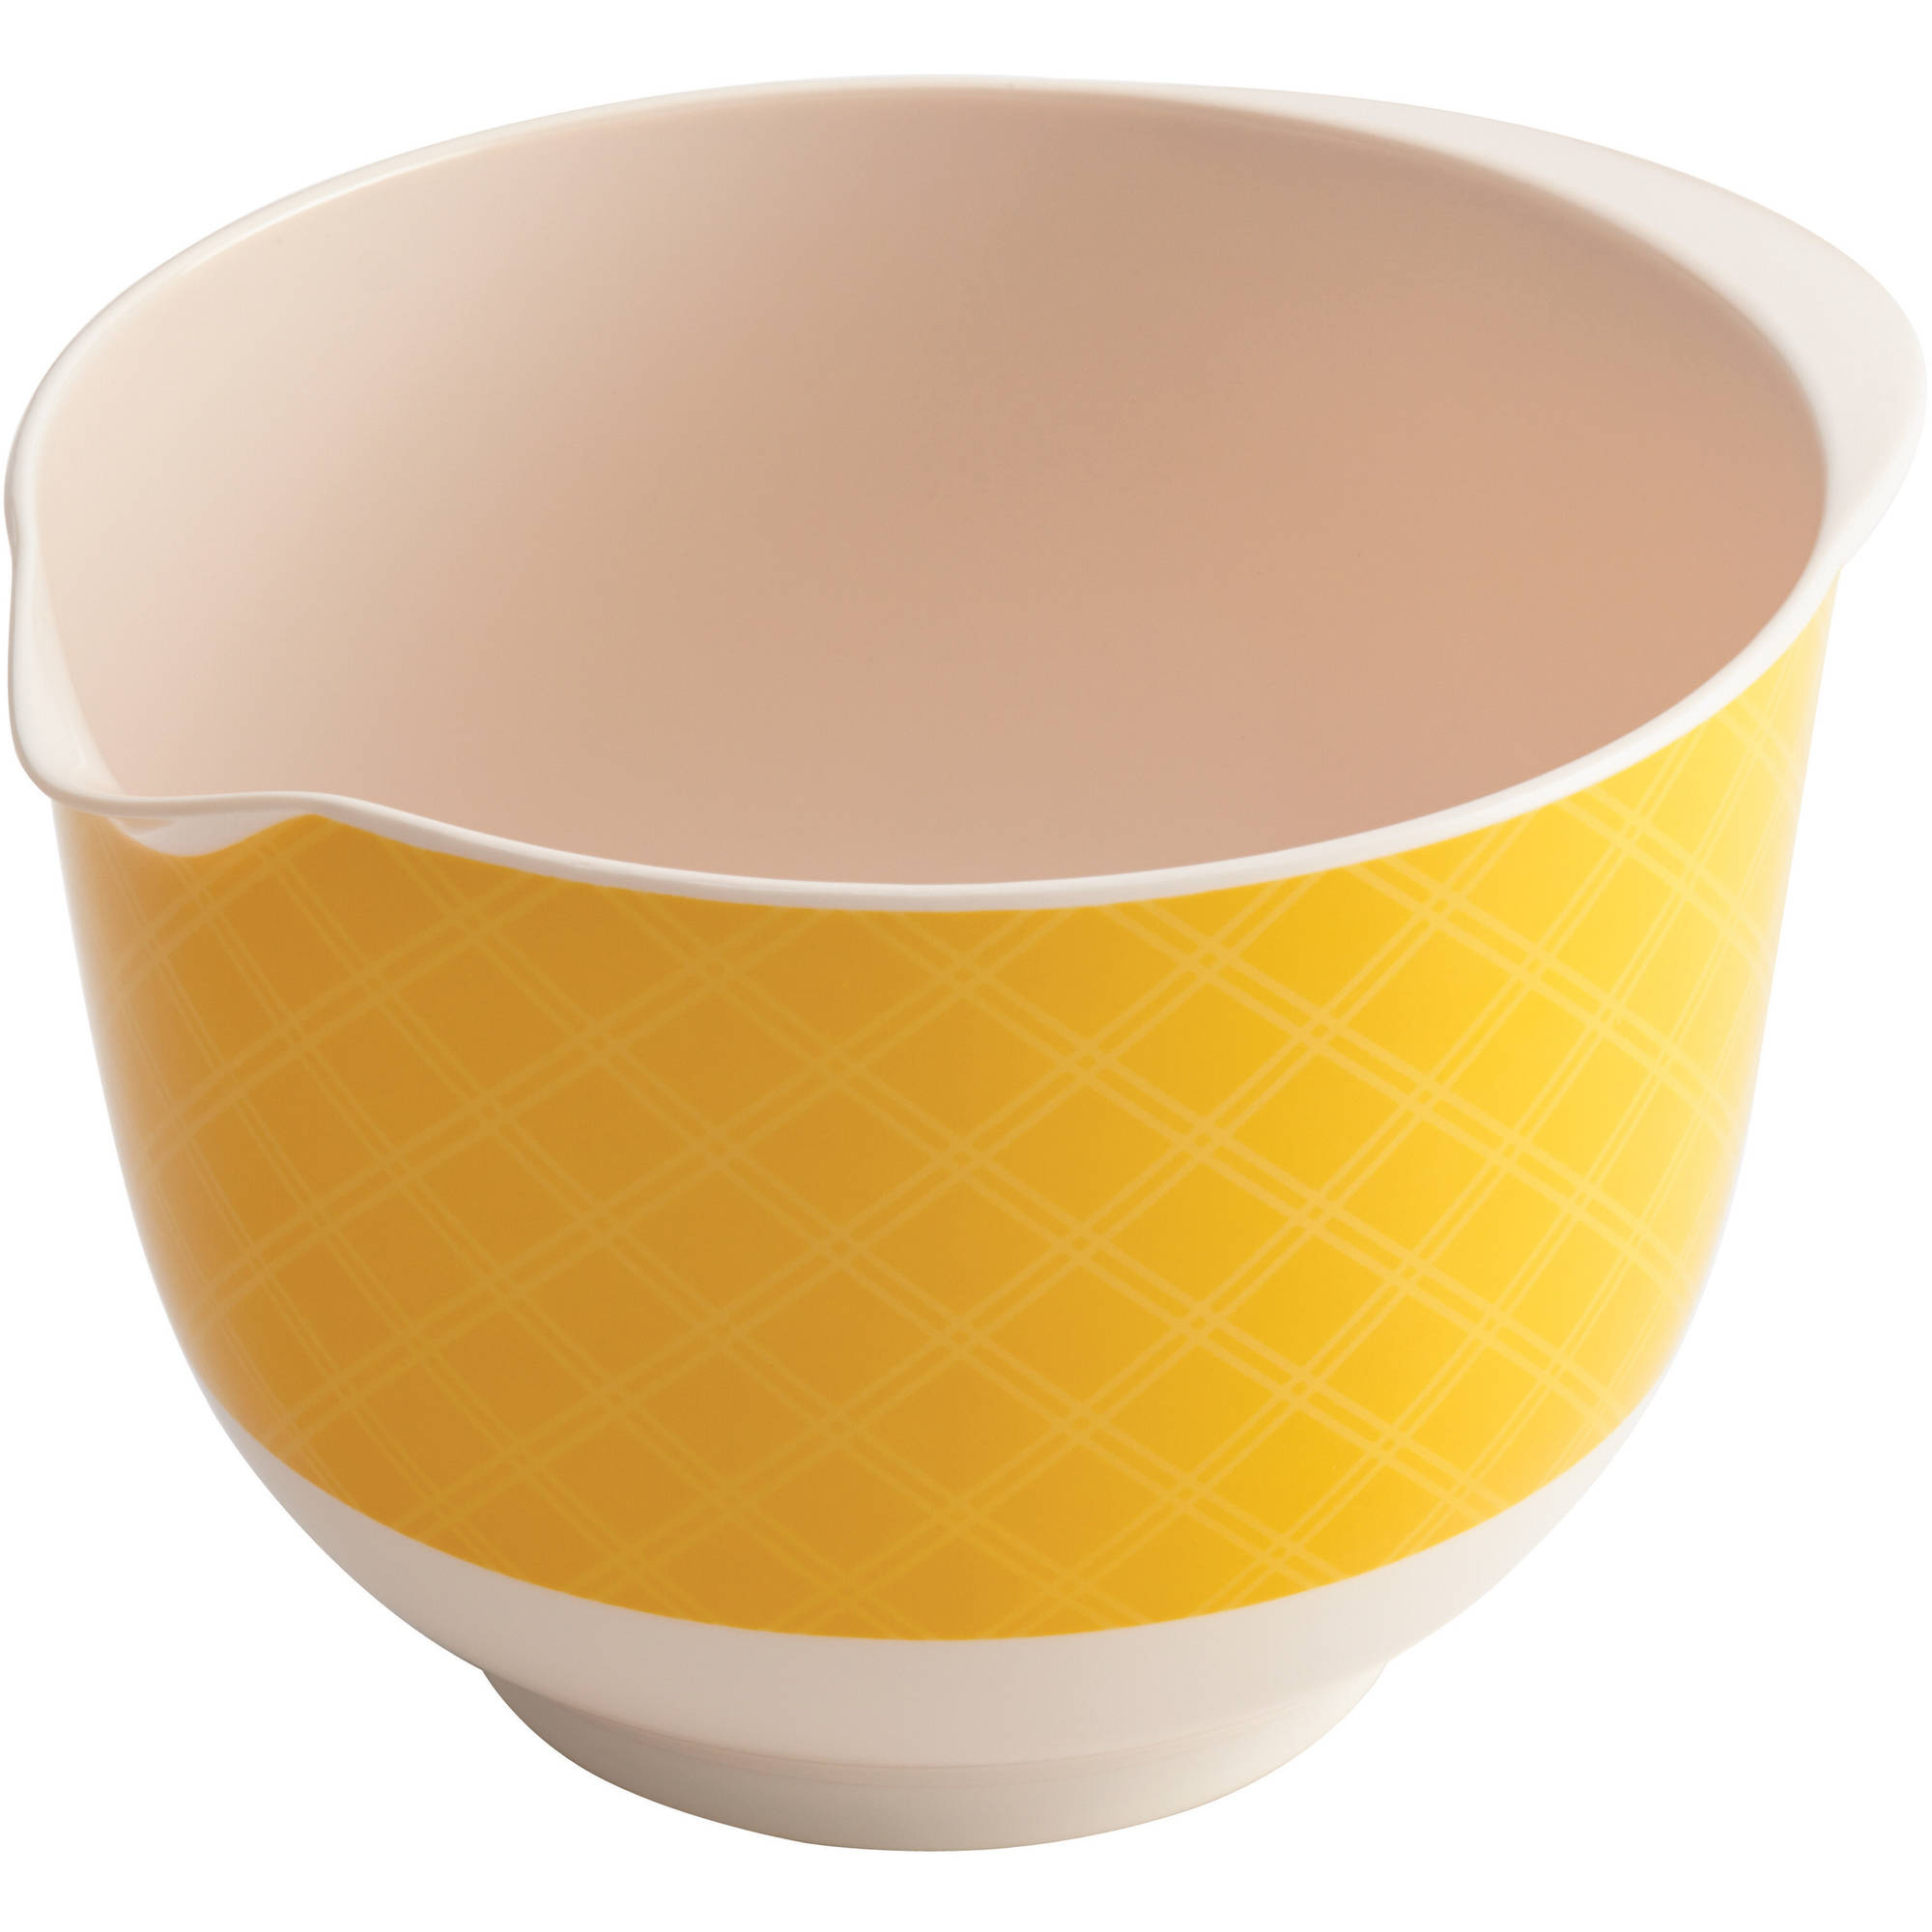 Cake Boss Countertop Accessories Melamine Mixing Bowl, 1.8-Quart, Basic Pattern by Meyer Corporation